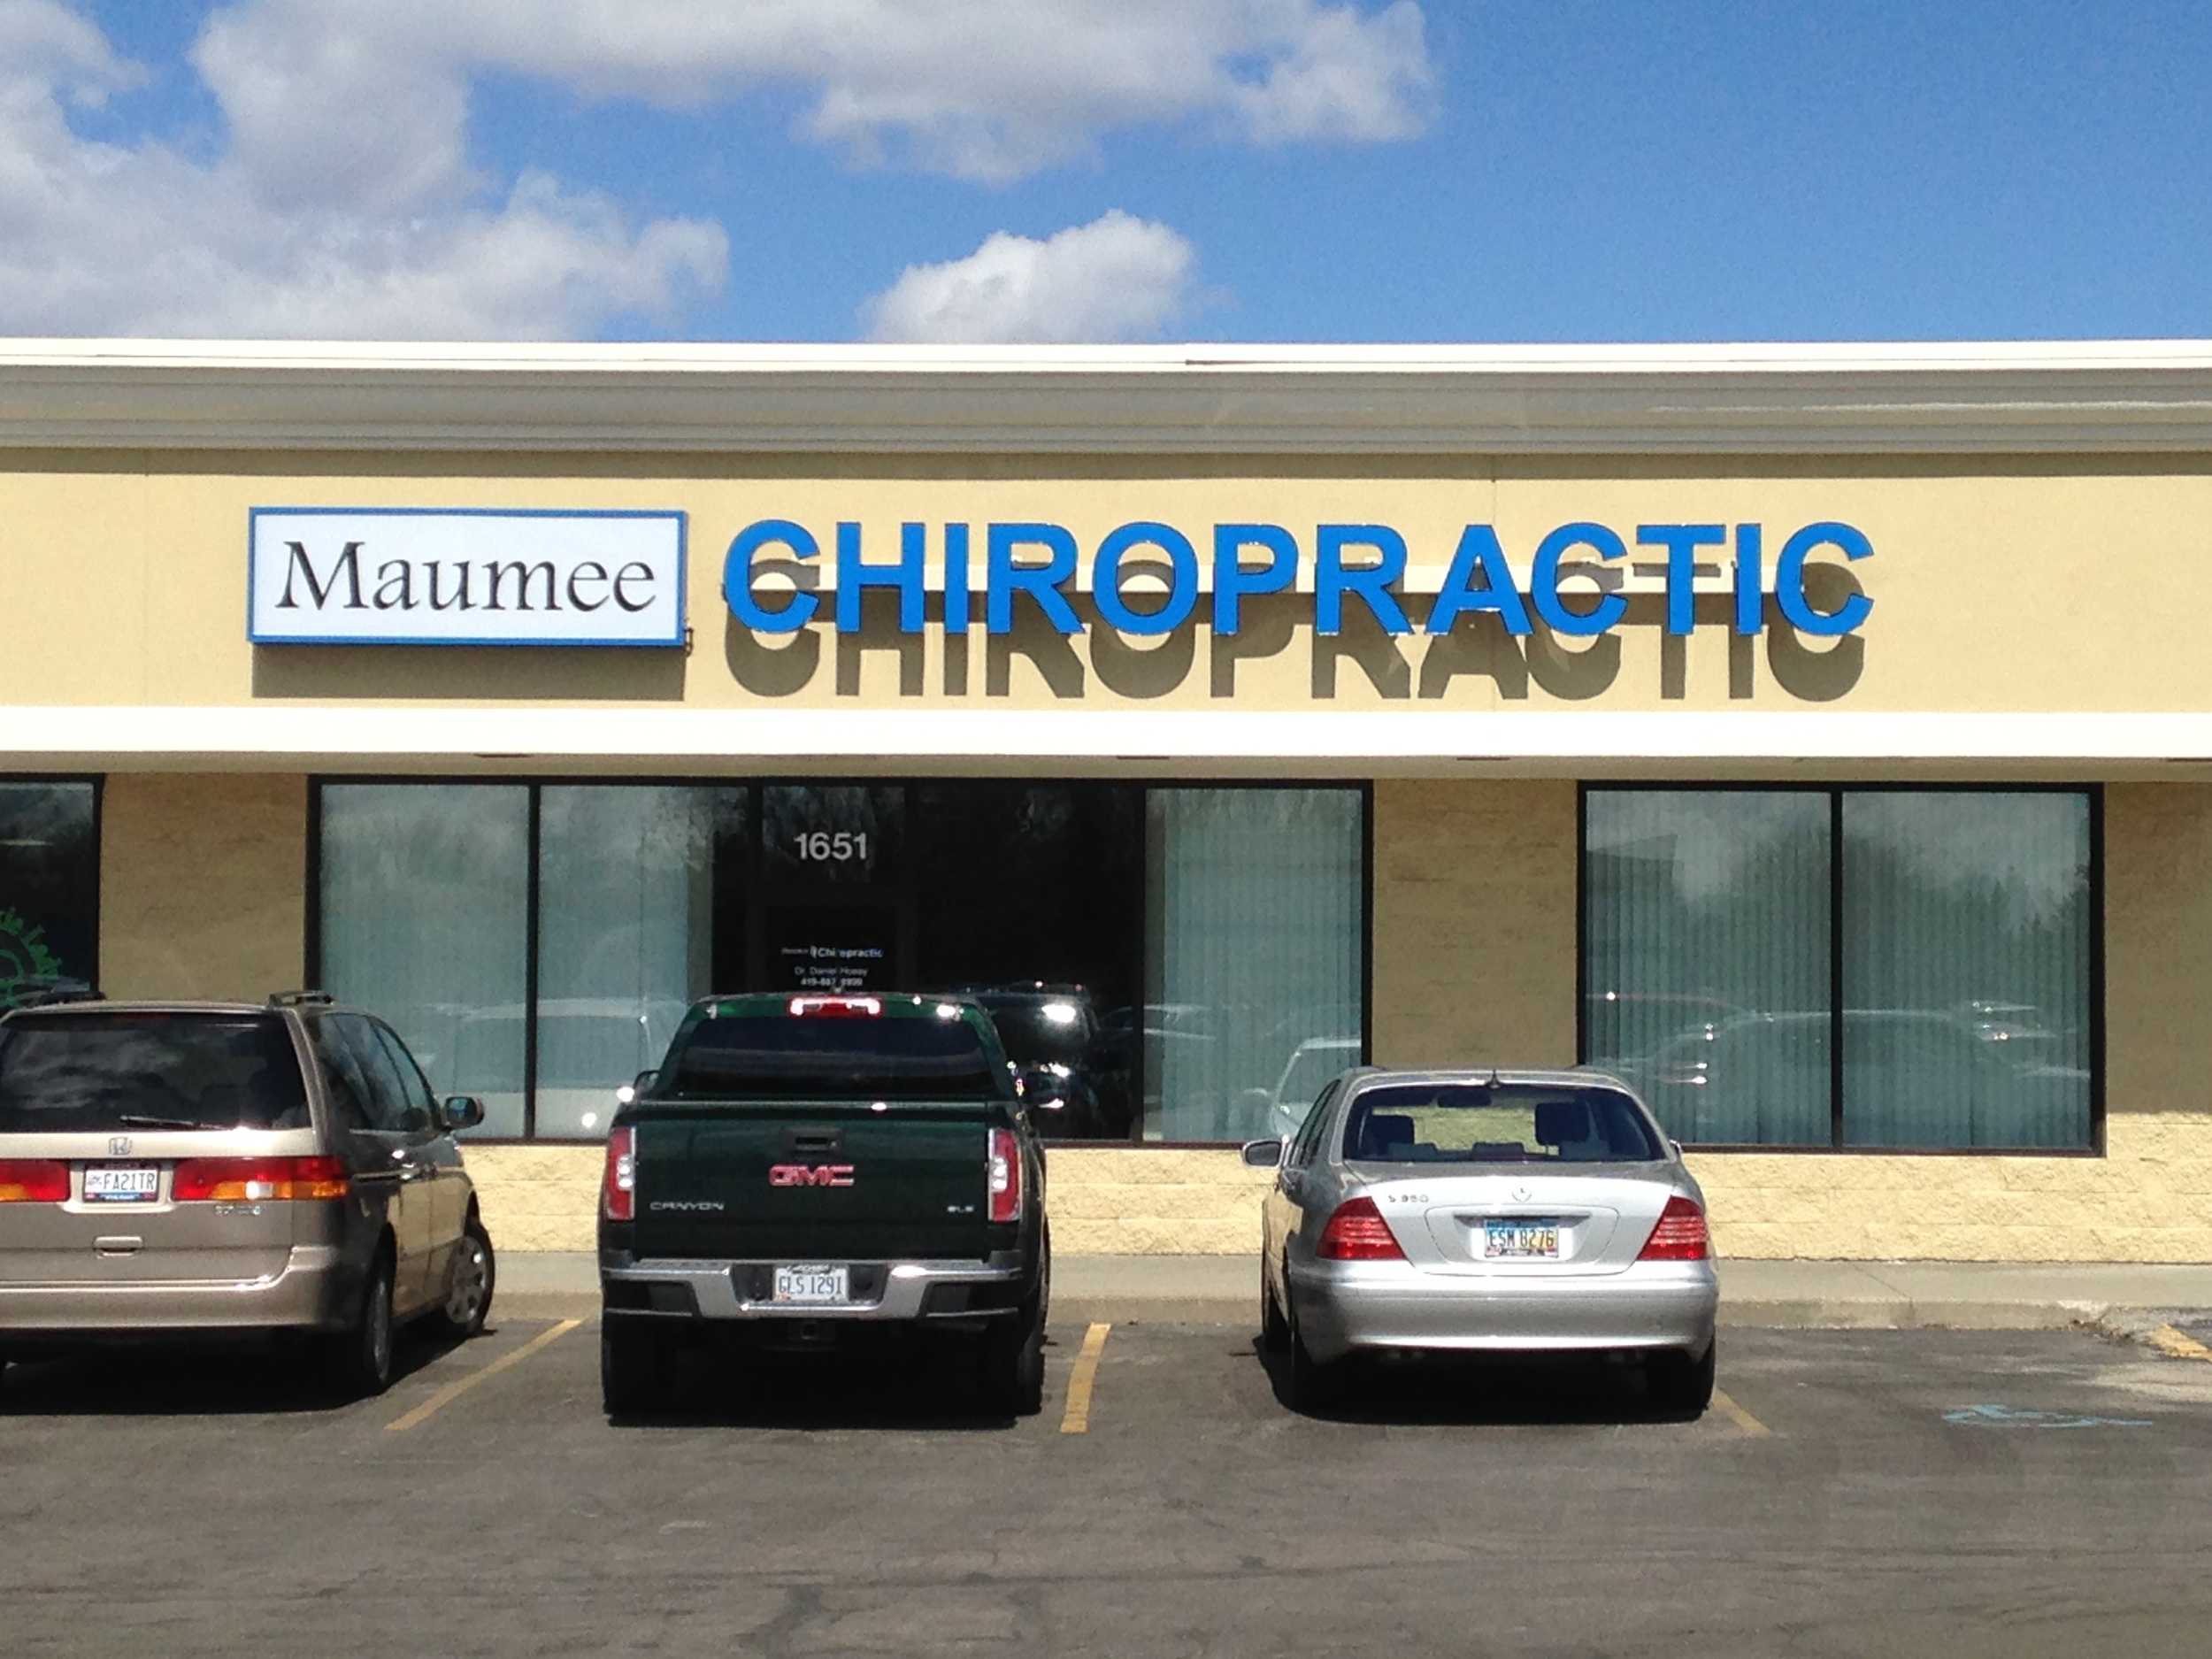 Maumee Chiropractic